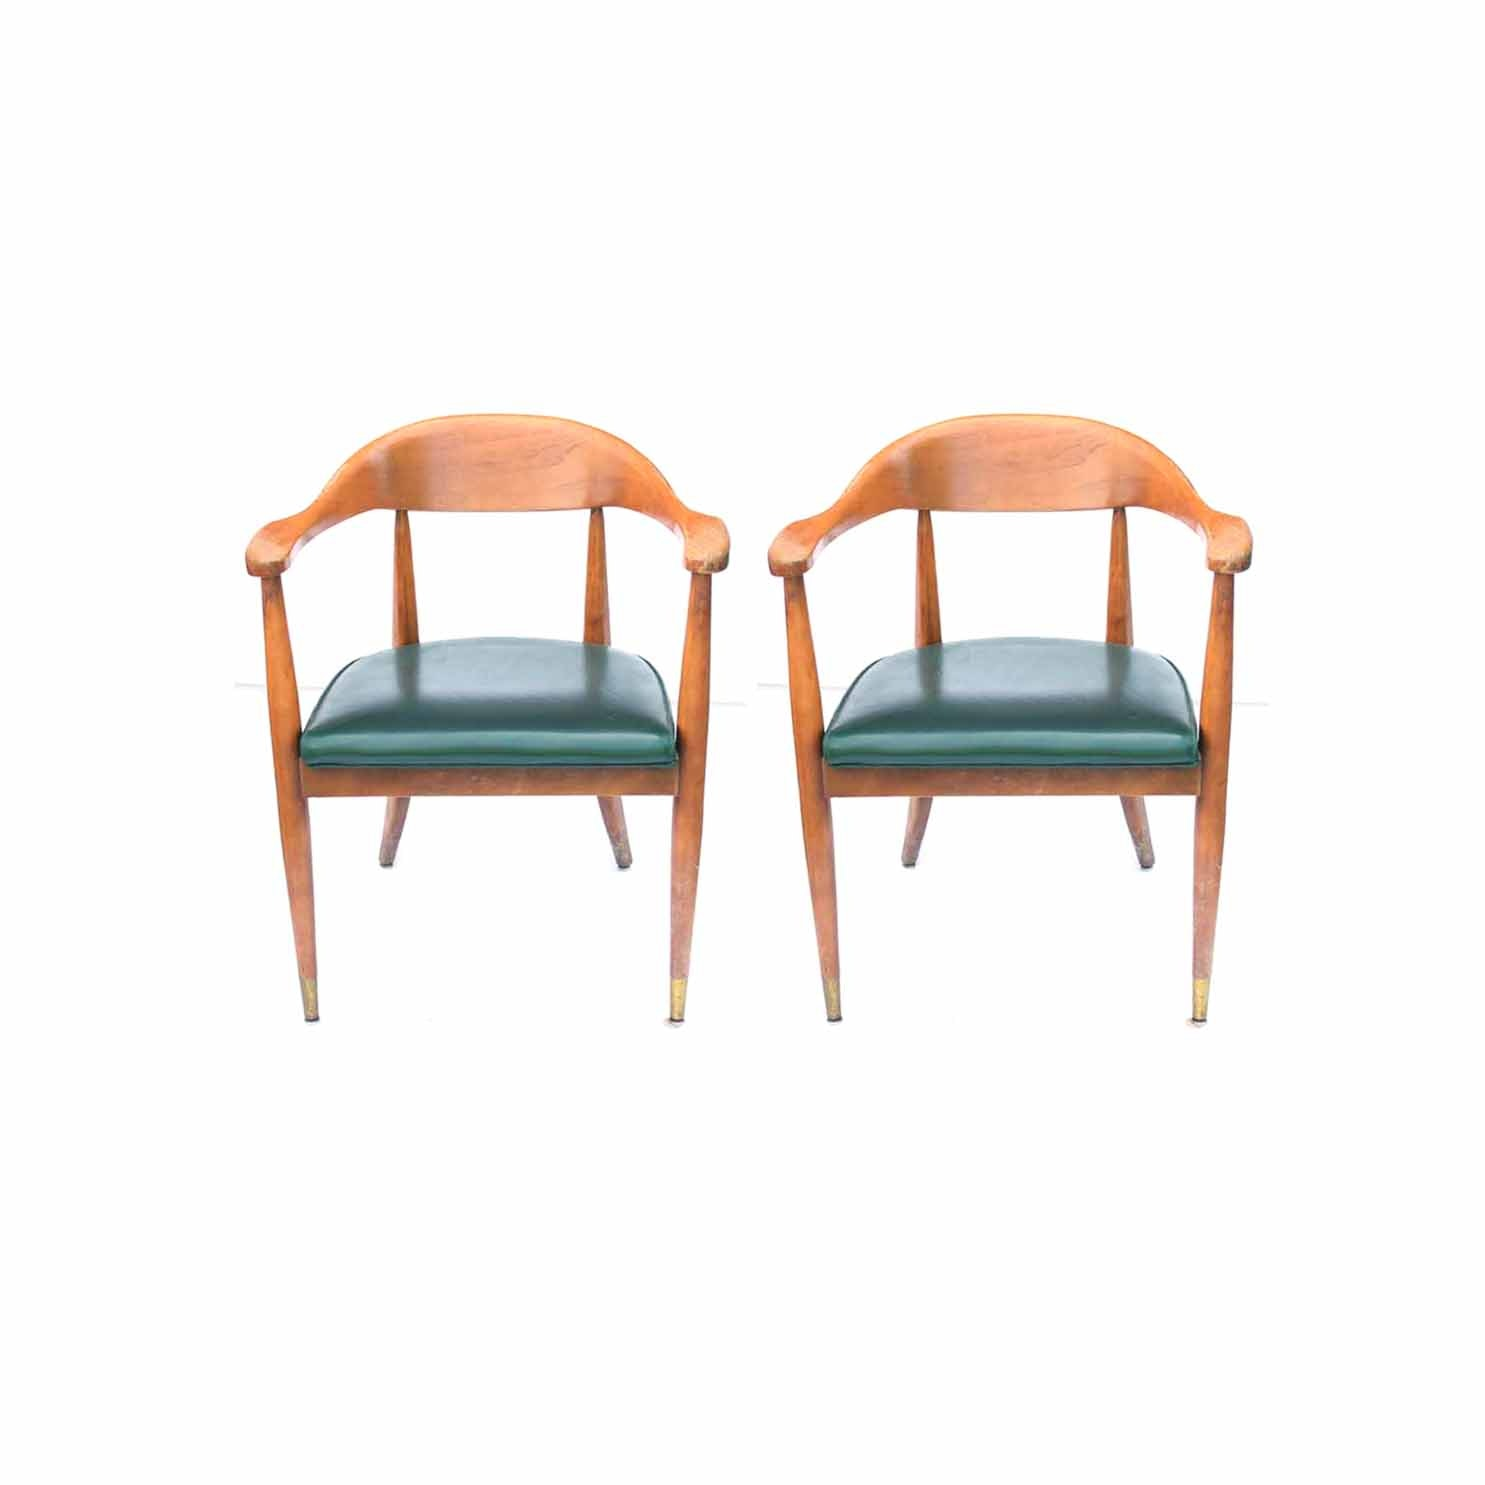 Two Mid Century Modern Armchairs